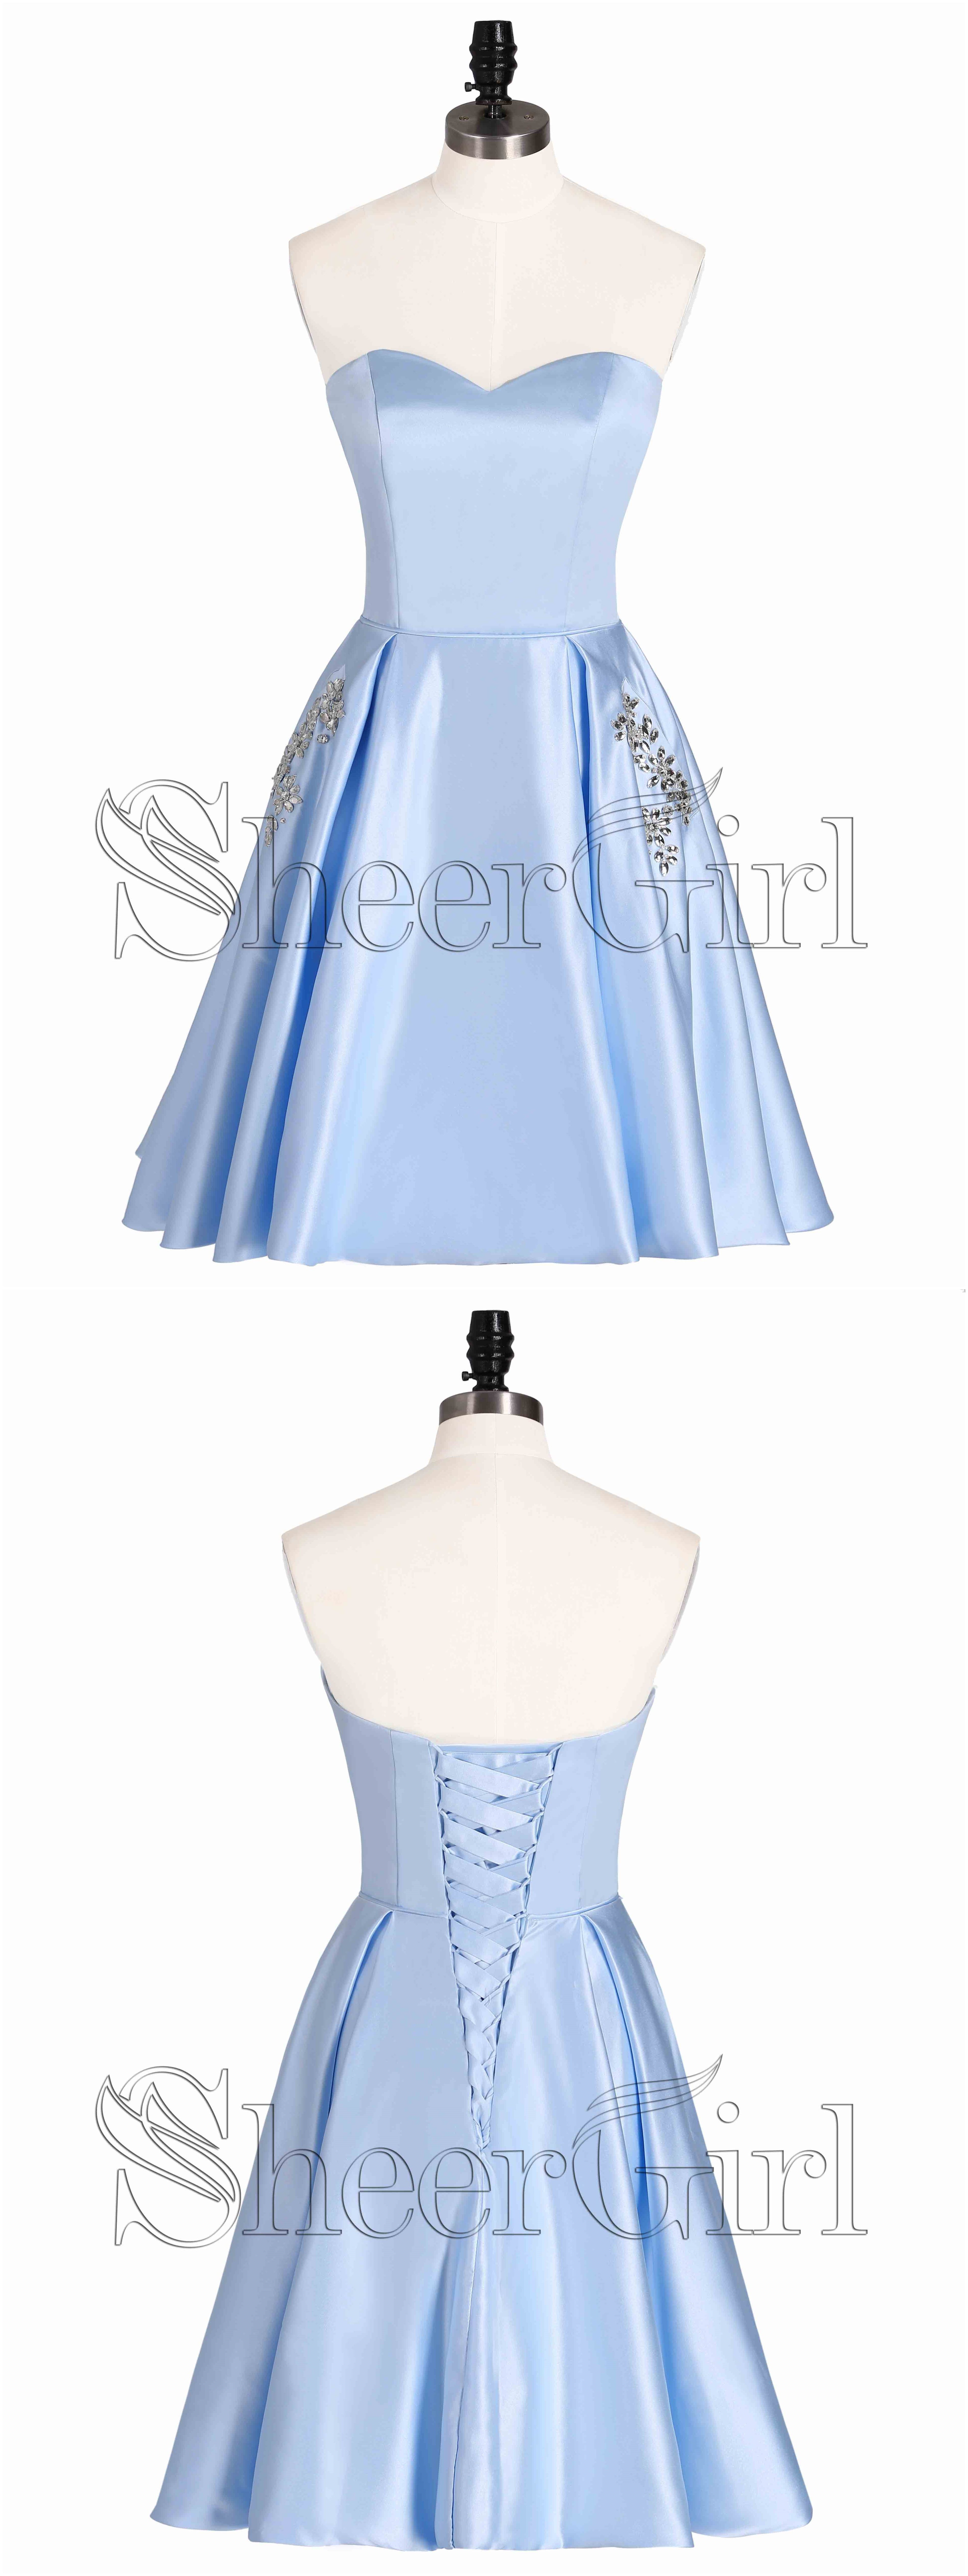 Sweetheart neck corset back sky blue short homecoming dresses with